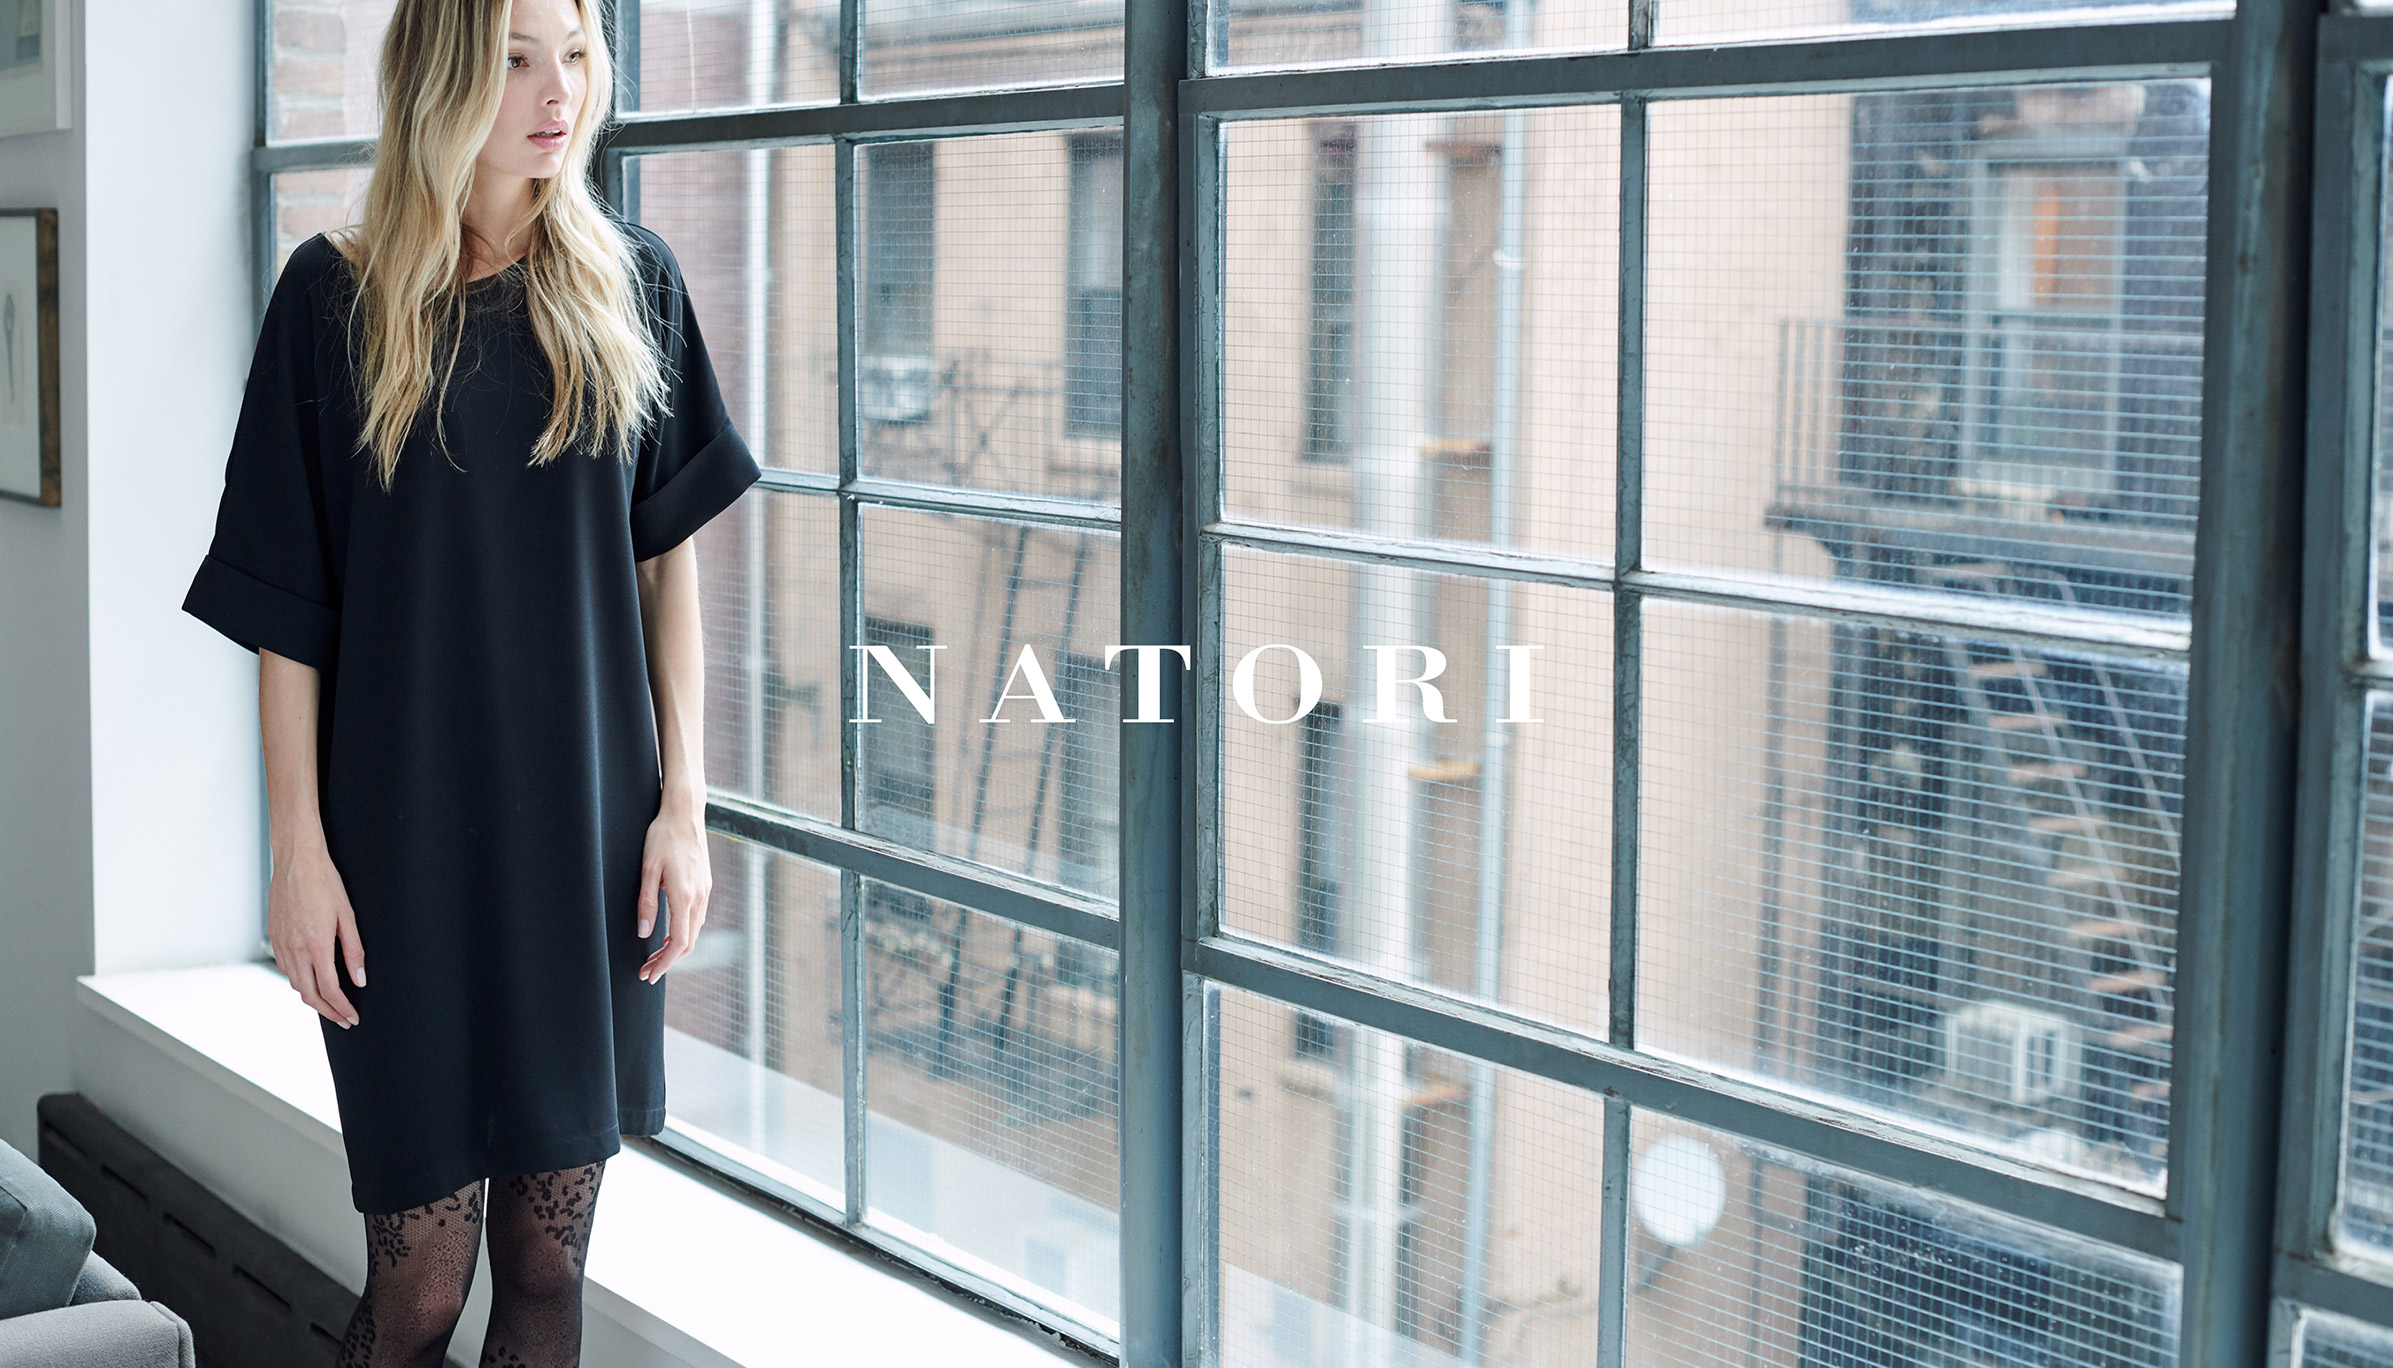 Natori model looking out the window wearing black dress